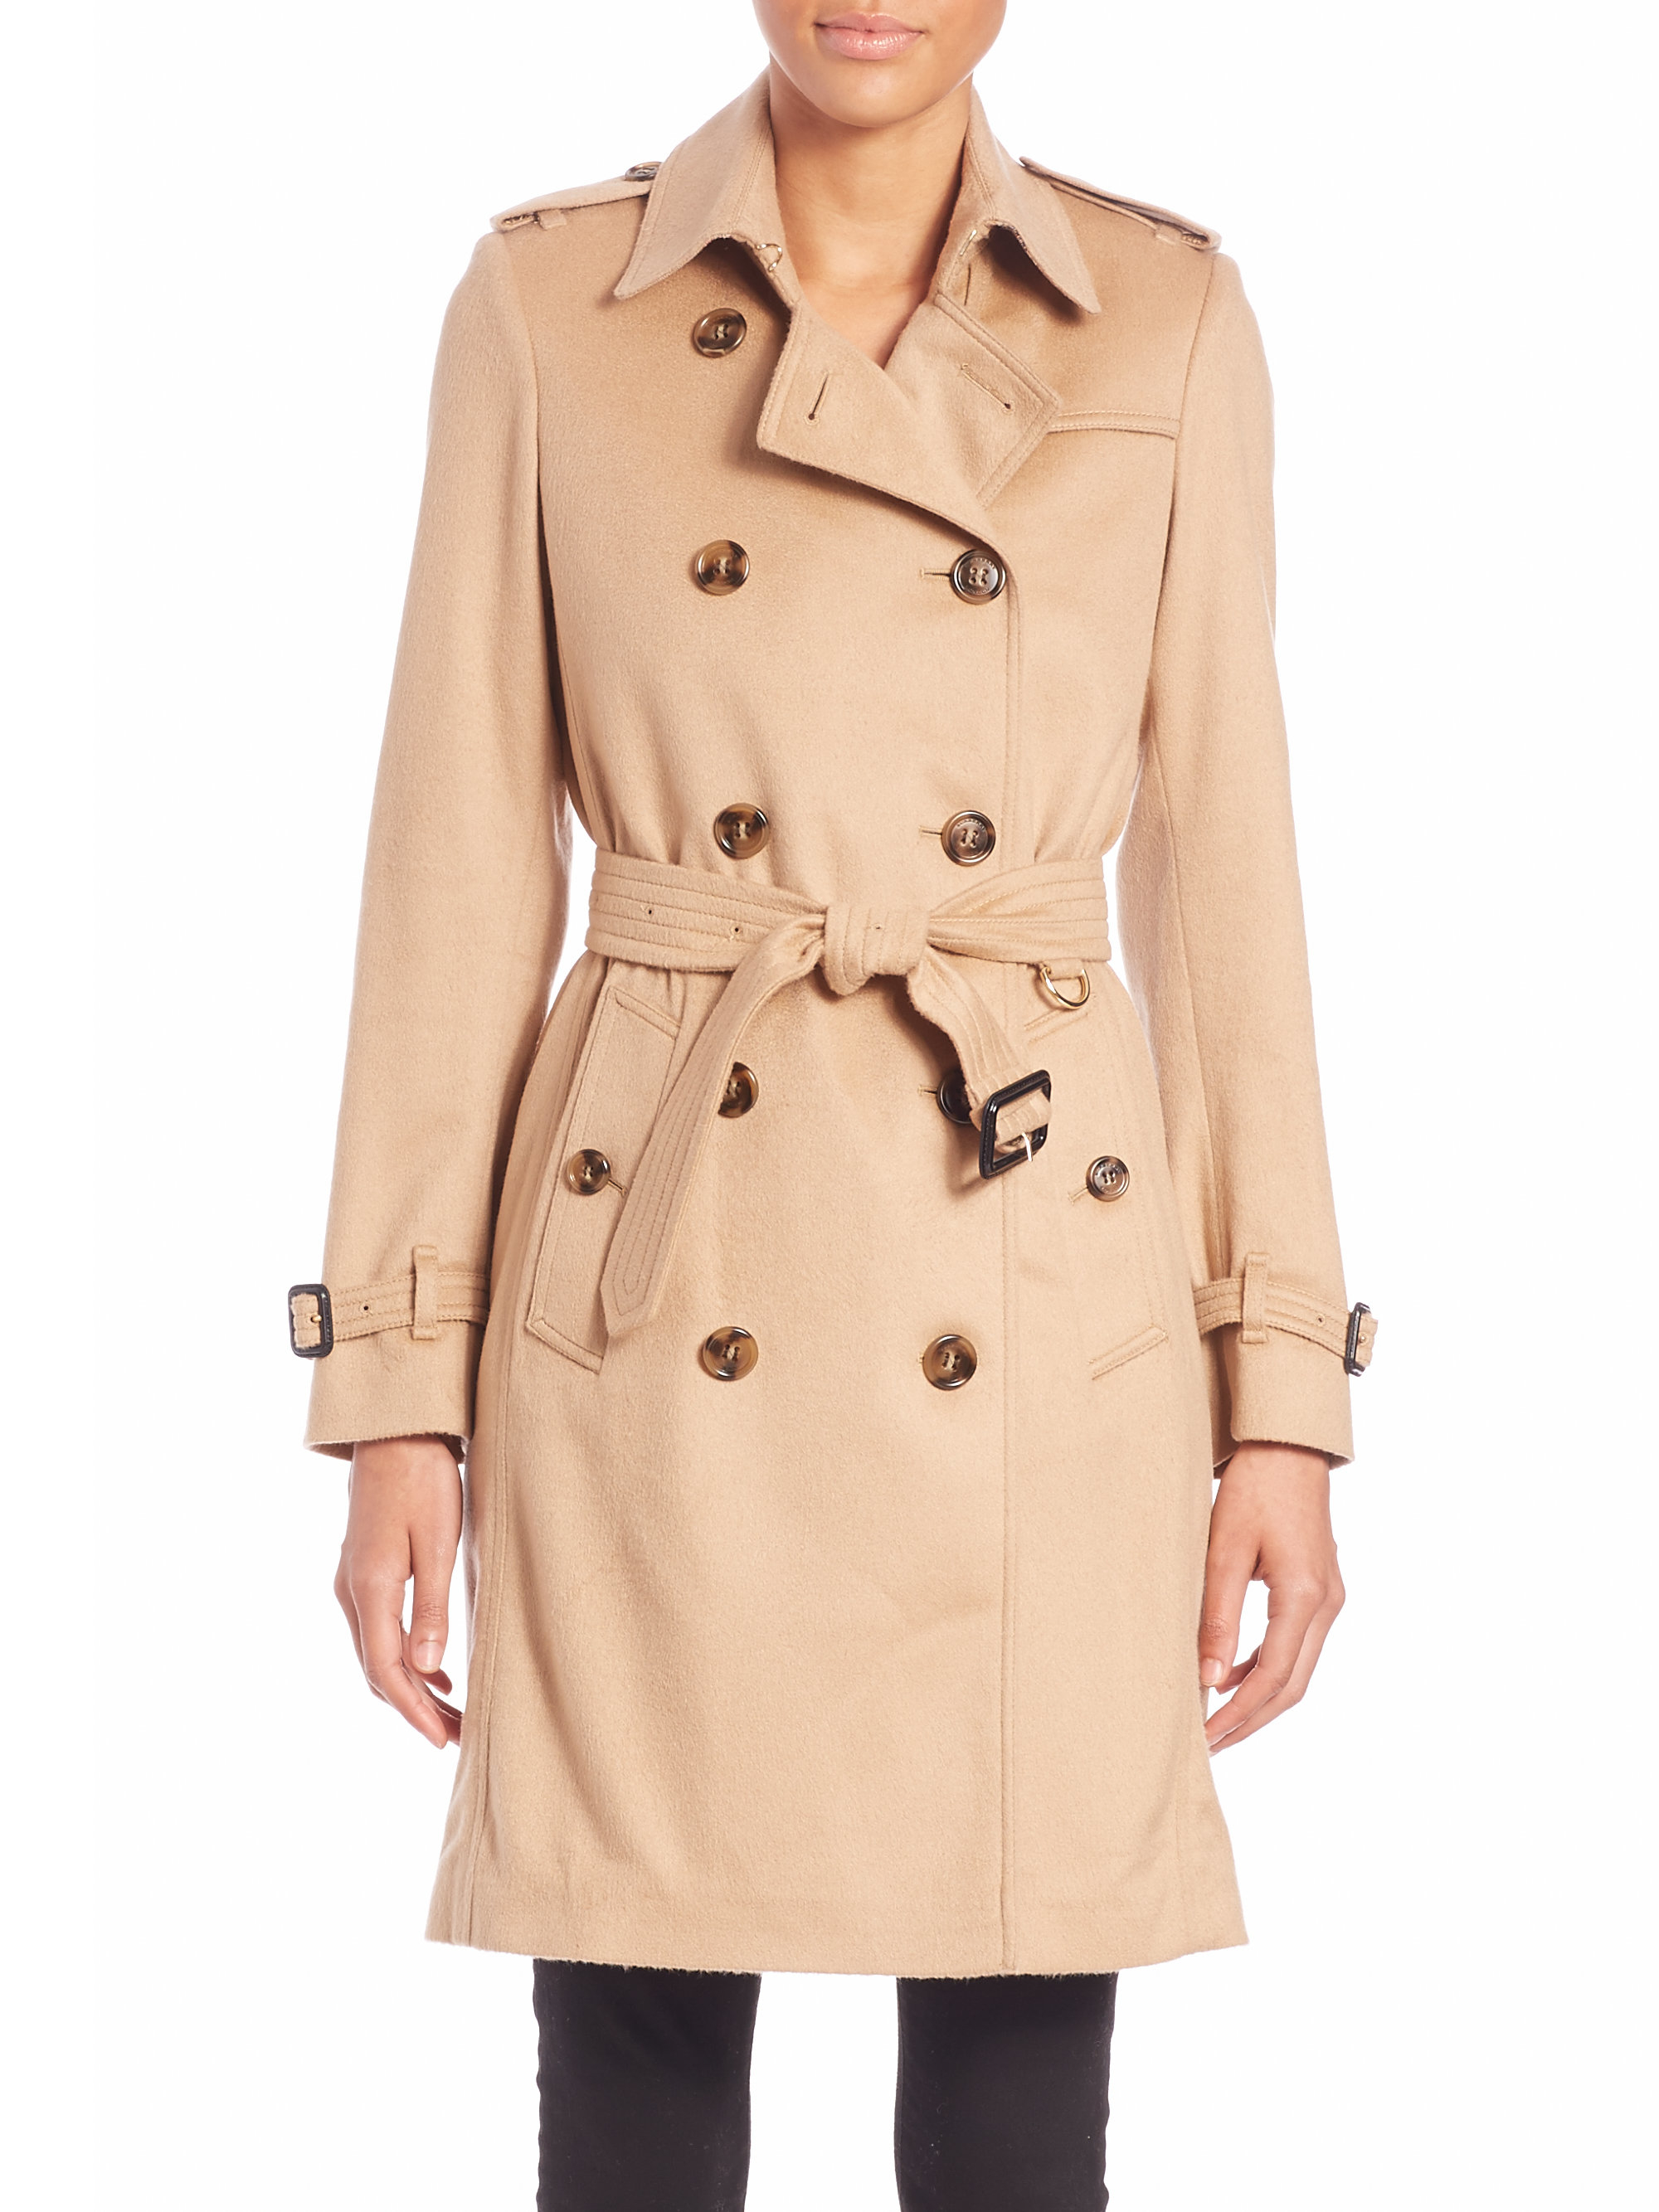 Lyst Burberry Kensington Camel Cashmere Trench Coat In